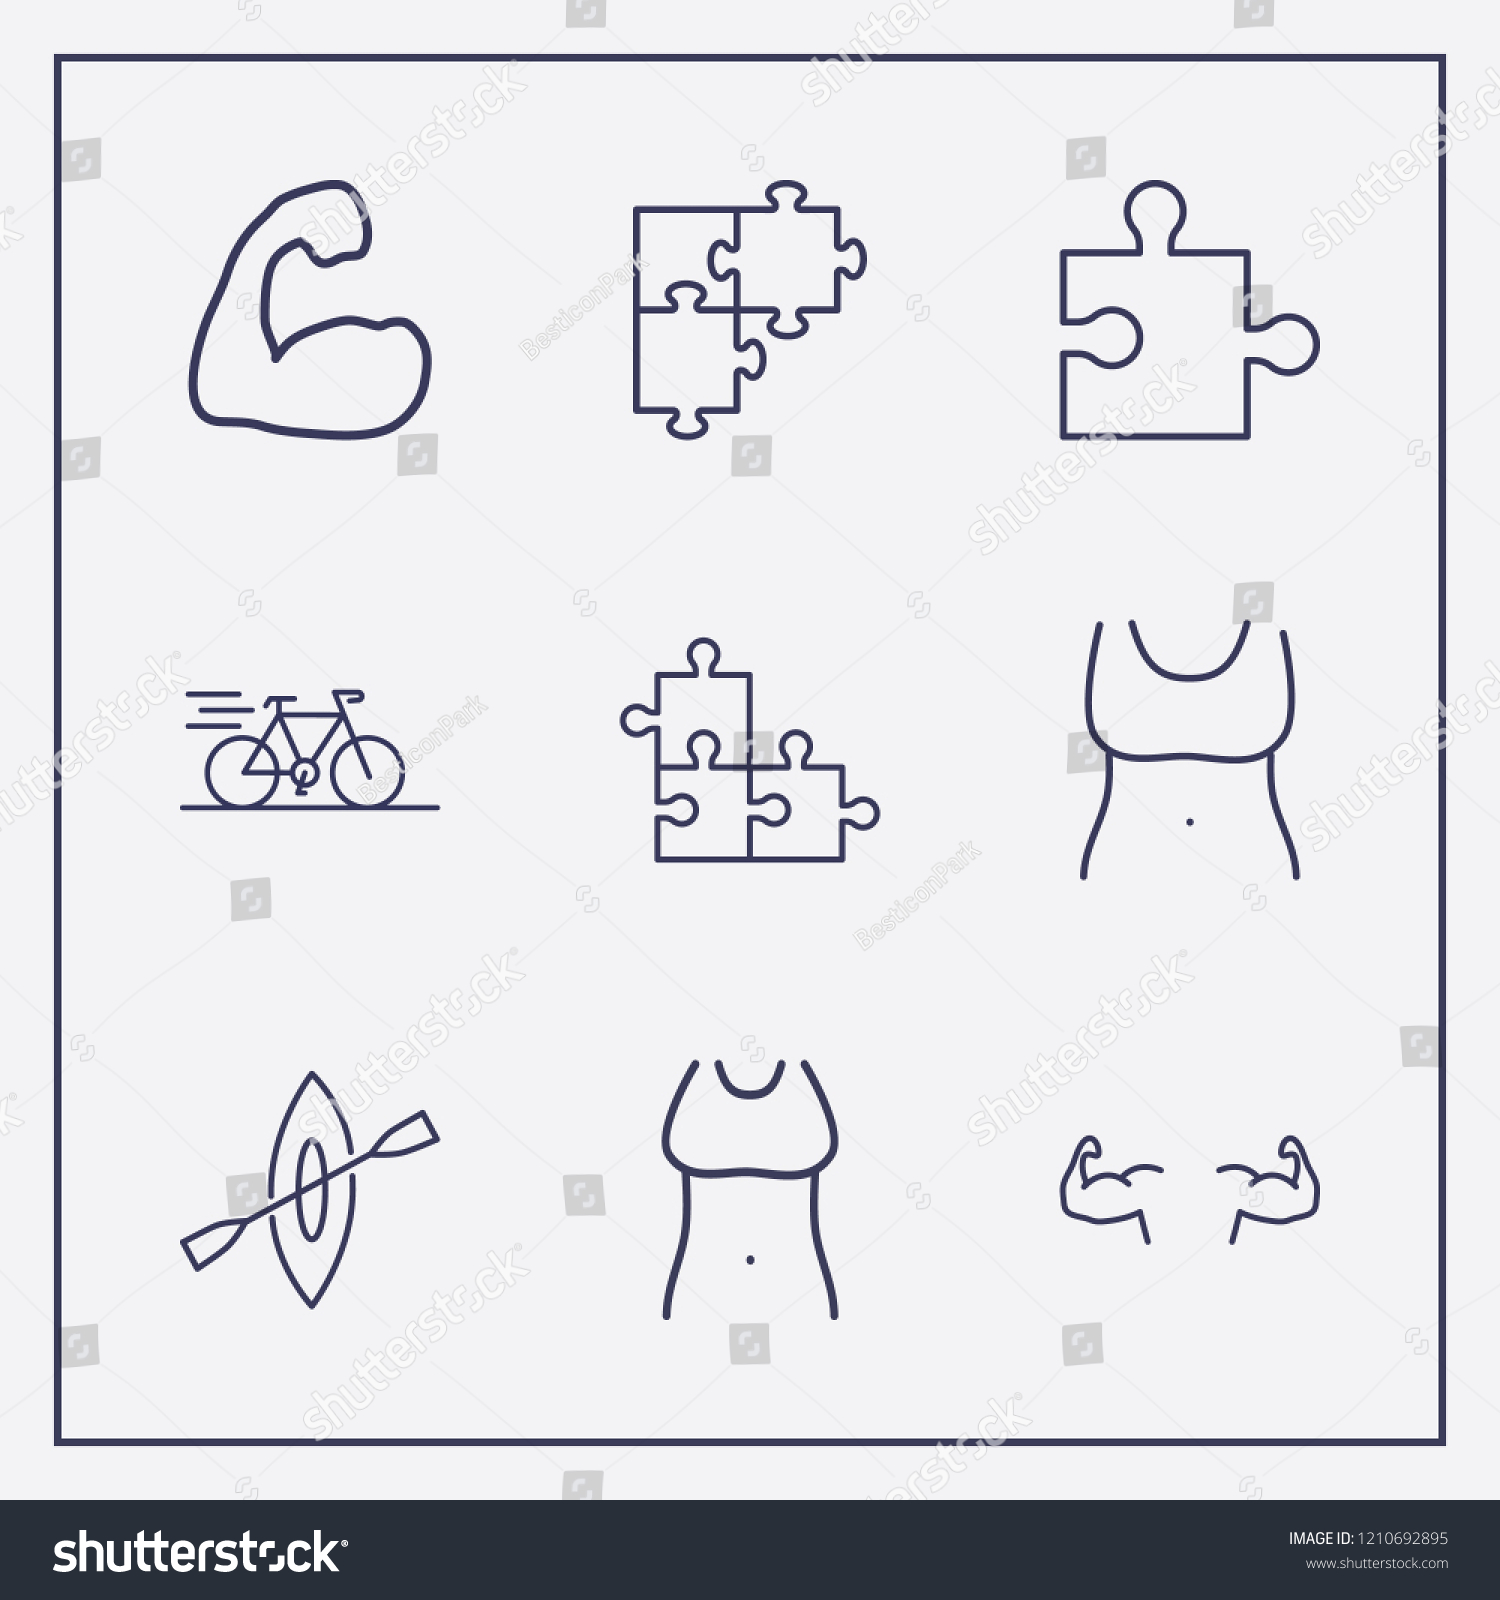 hight resolution of outline 9 fit icon set bike rowing fit woman body and jigsaw vector